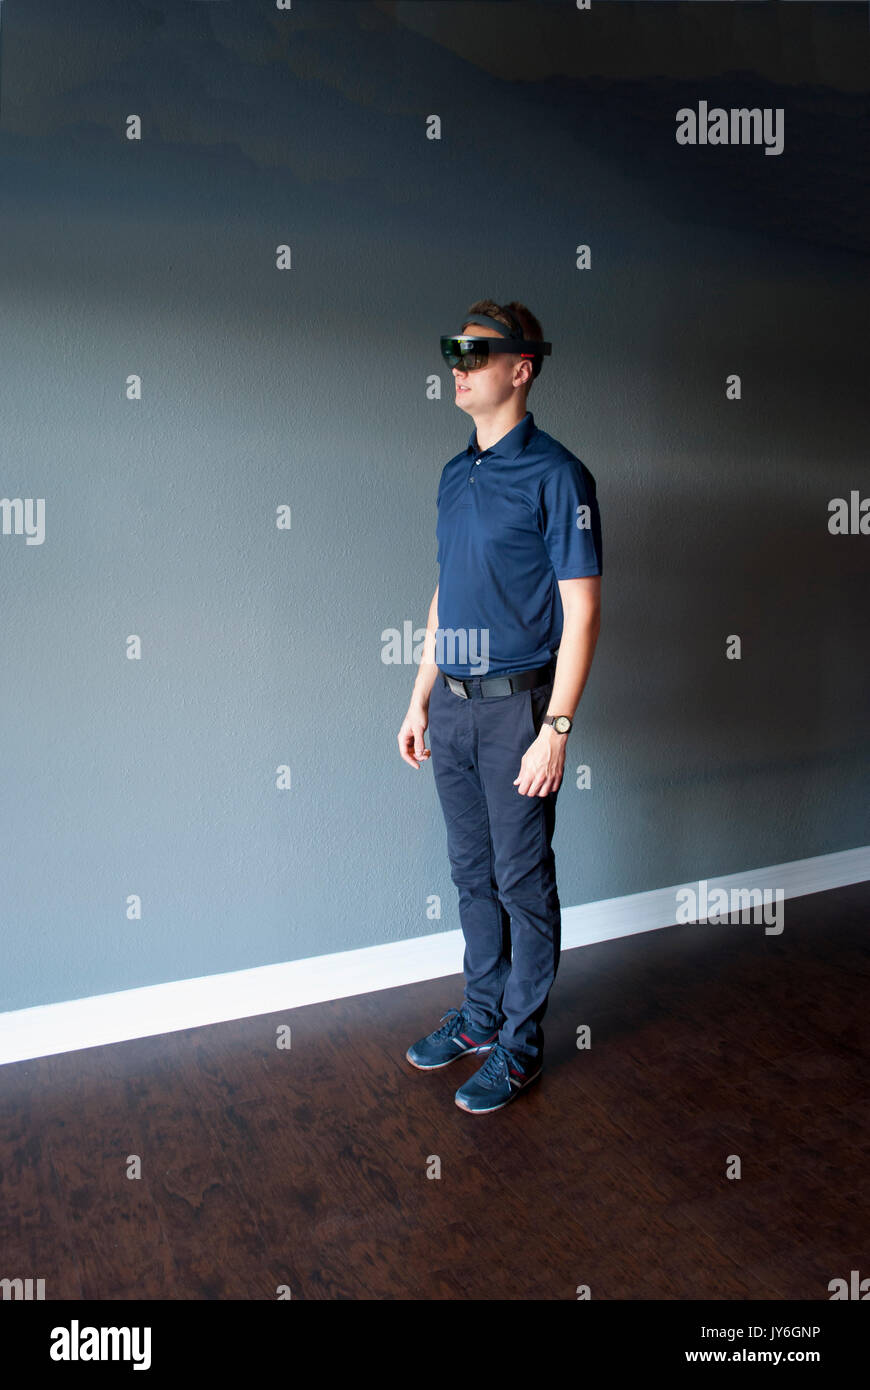 Young engineer in holographic headset creating a virtual surrounding using special gestures - gaze - Stock Image